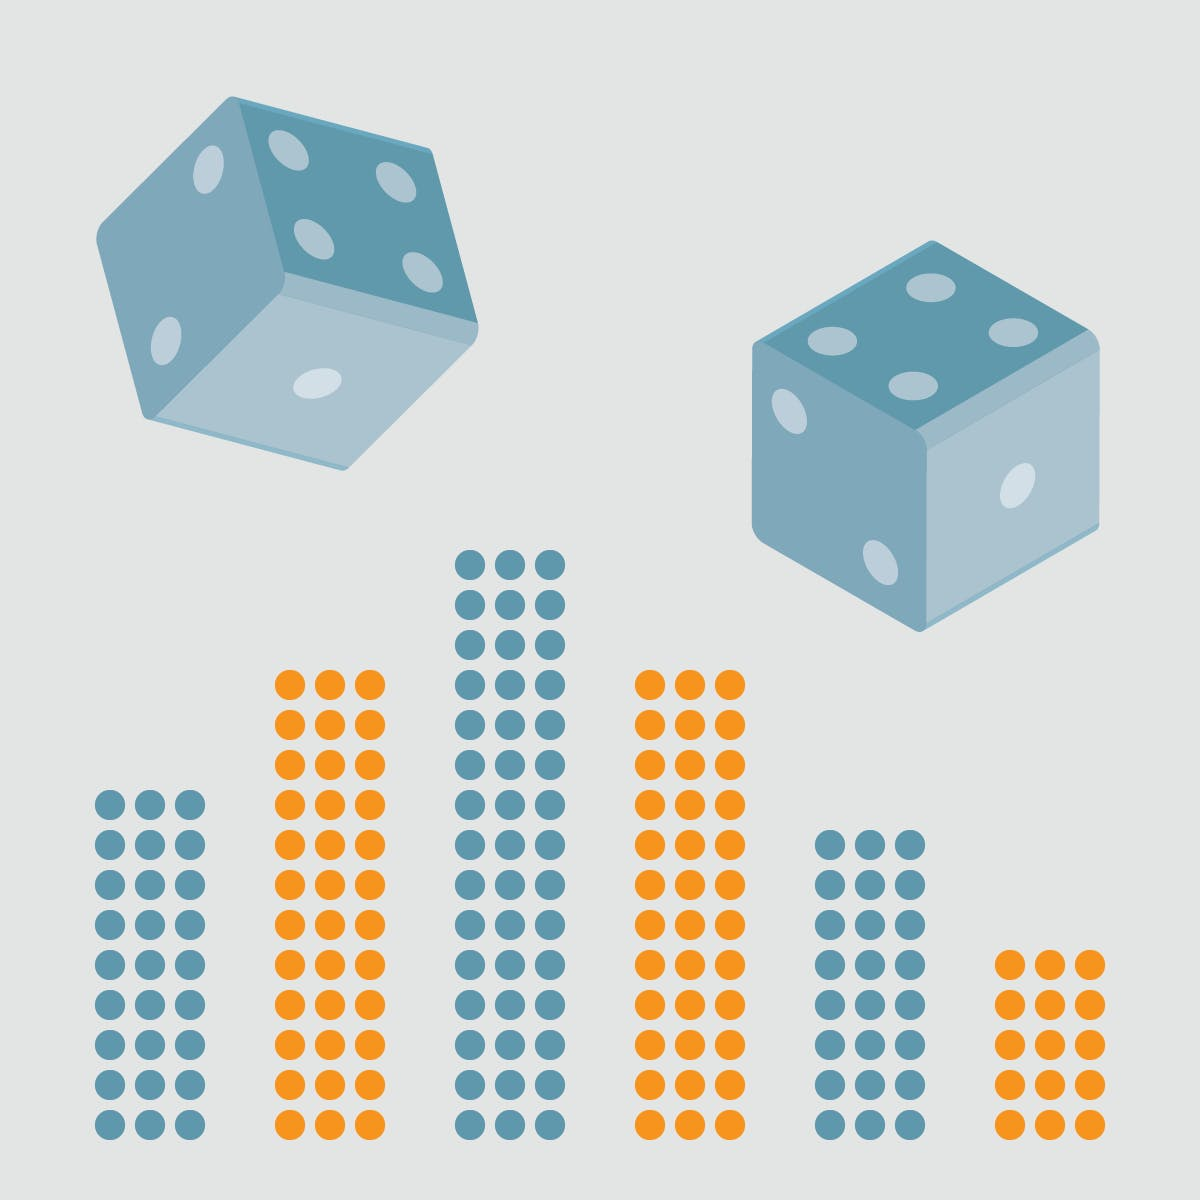 Introduction to Probability and Data